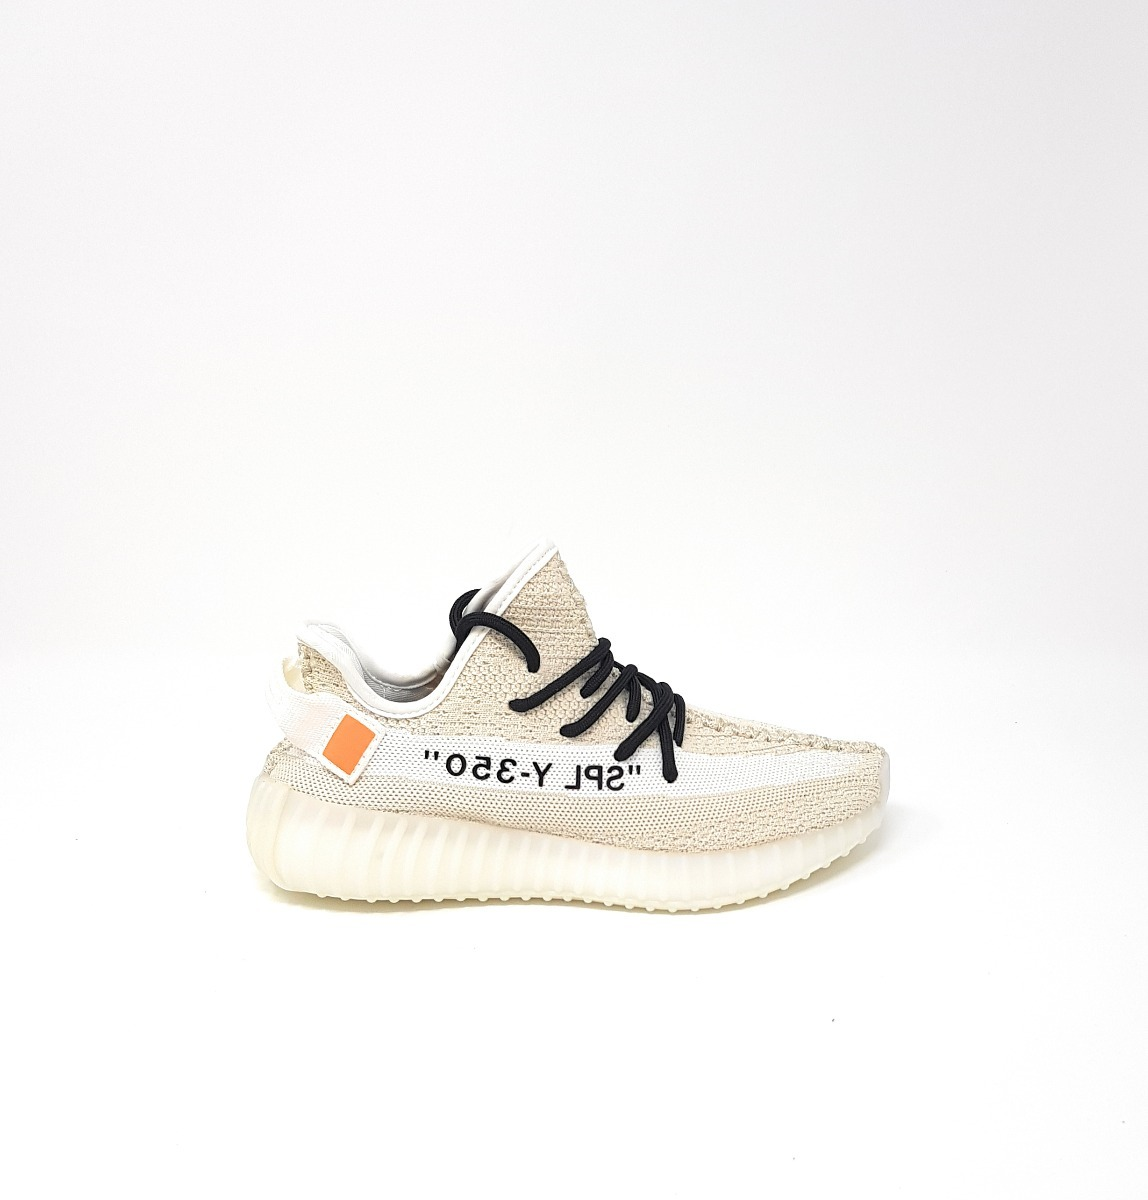 adidas hombre yeezy boost 350 v2